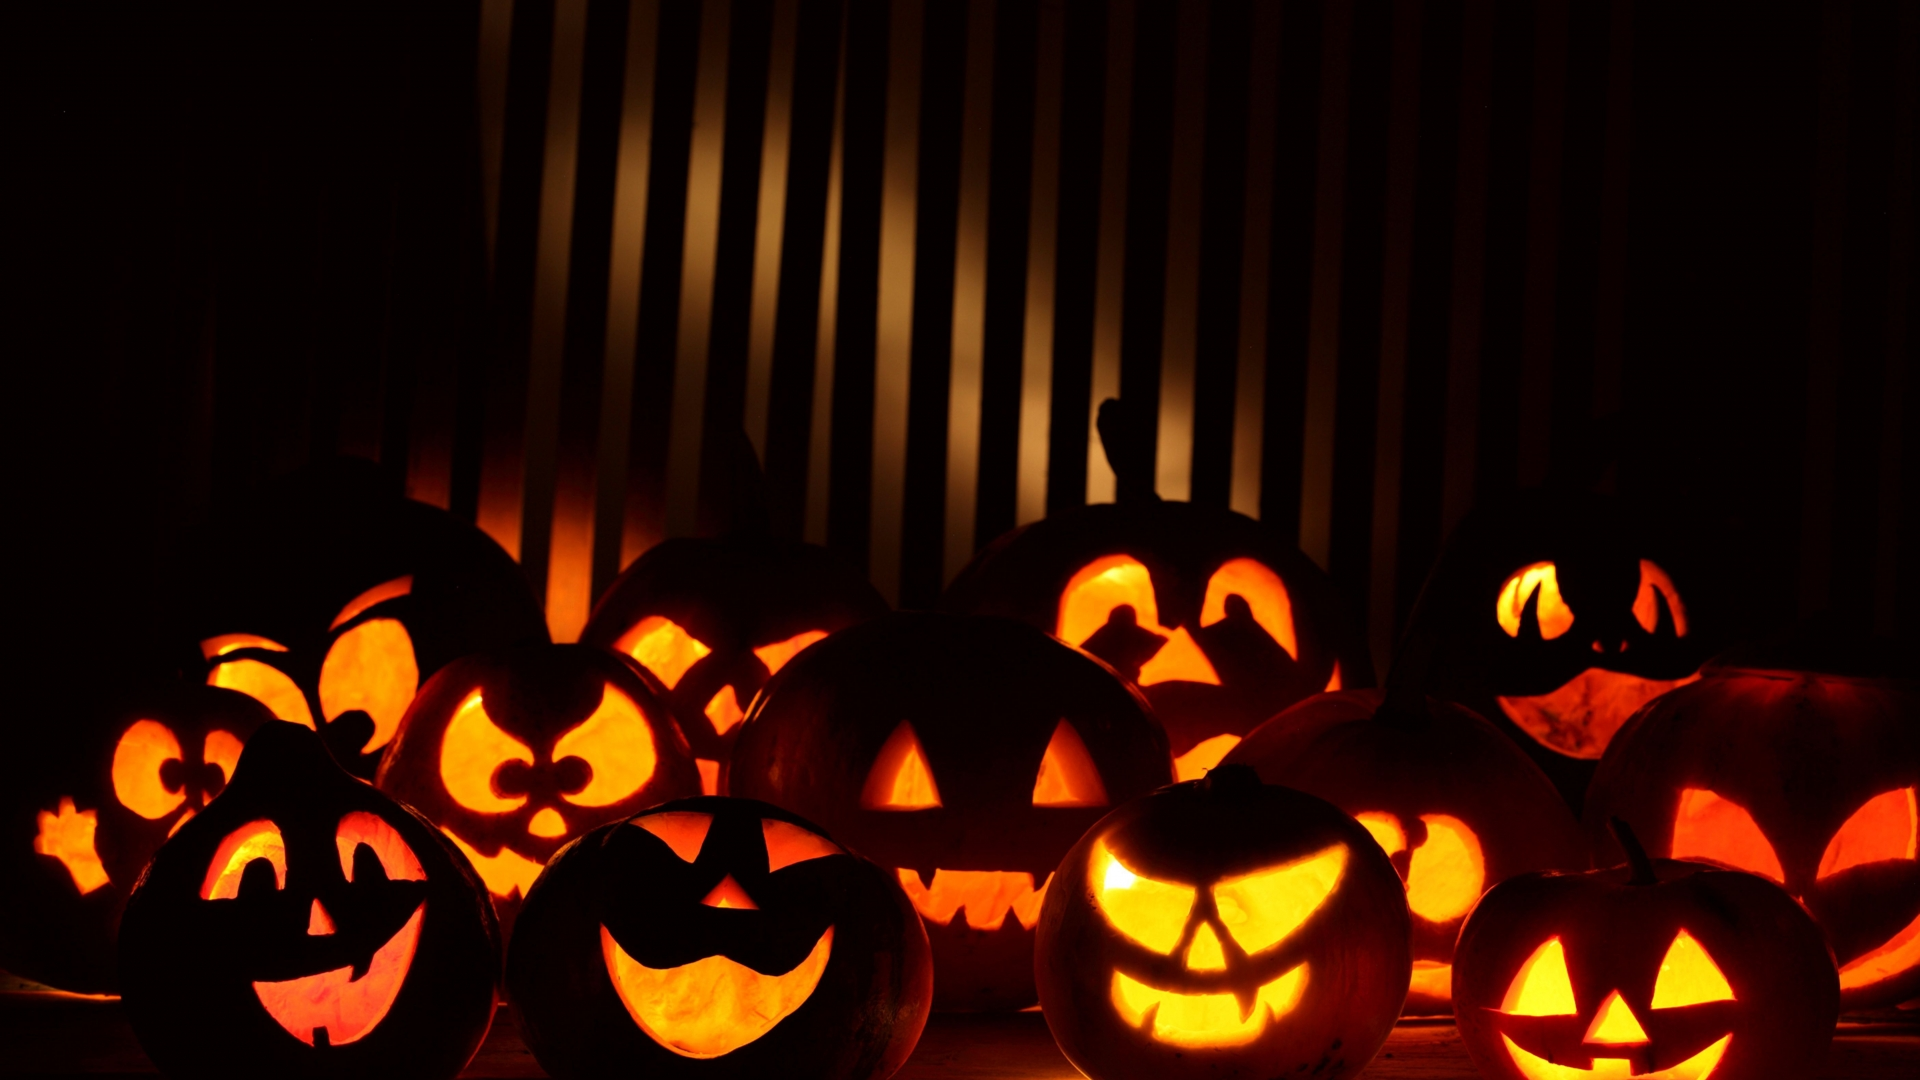 Halloween Backgrounds Download 1920x1080